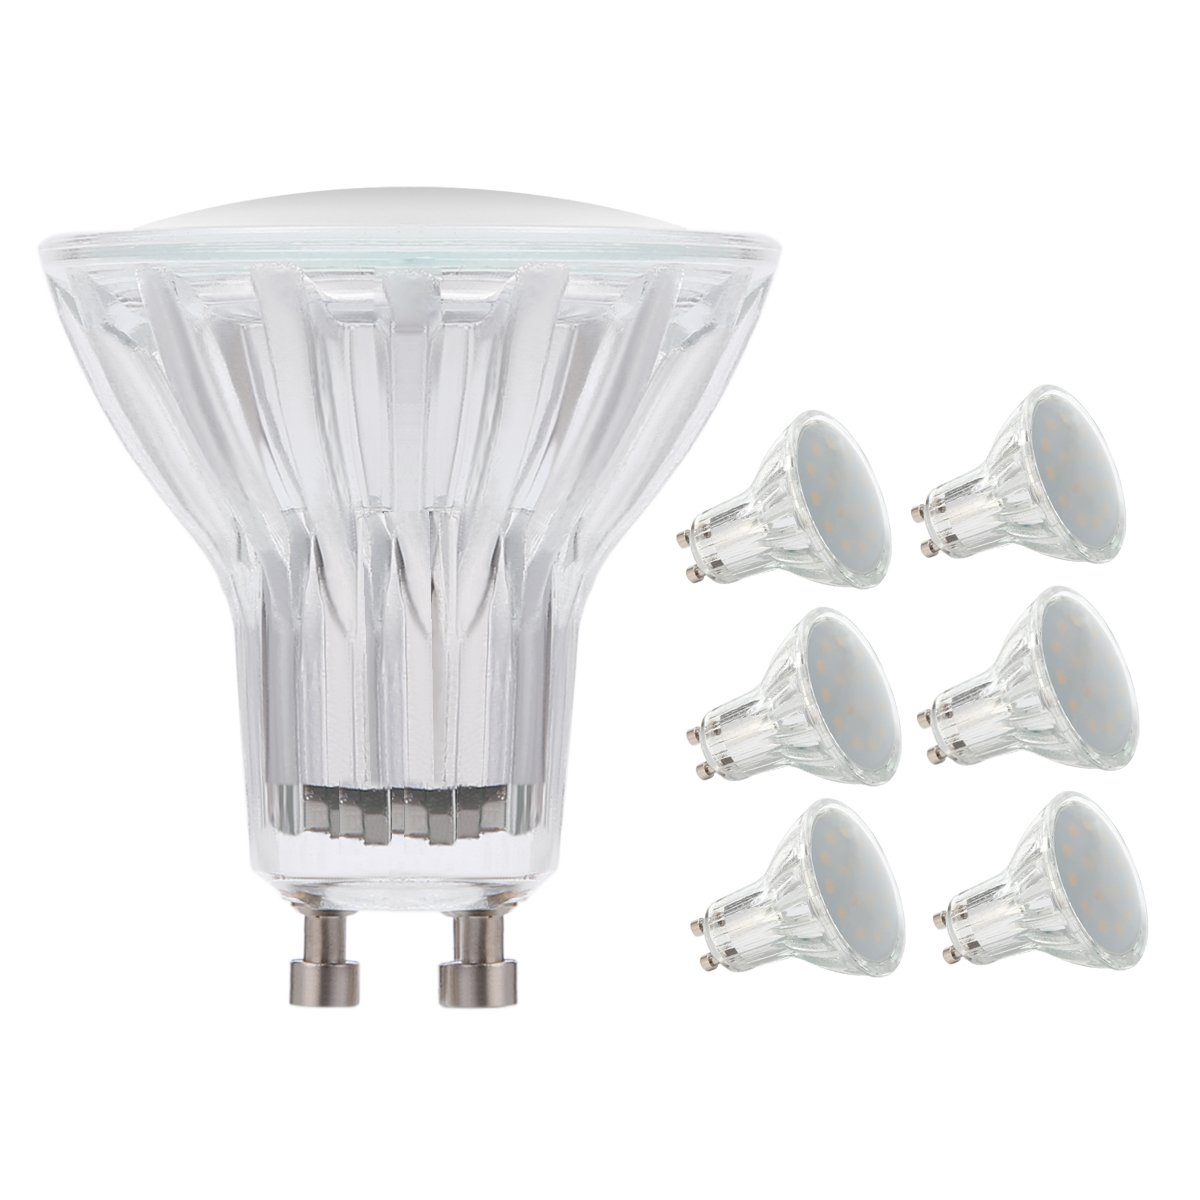 Mr16 Gu10 Led Bulbs Dimmable 7w 50w Equivalent 3000k: LAKES Dimmable (0-100%) GU10 MR16 LED Bulbs 50W Equivalent